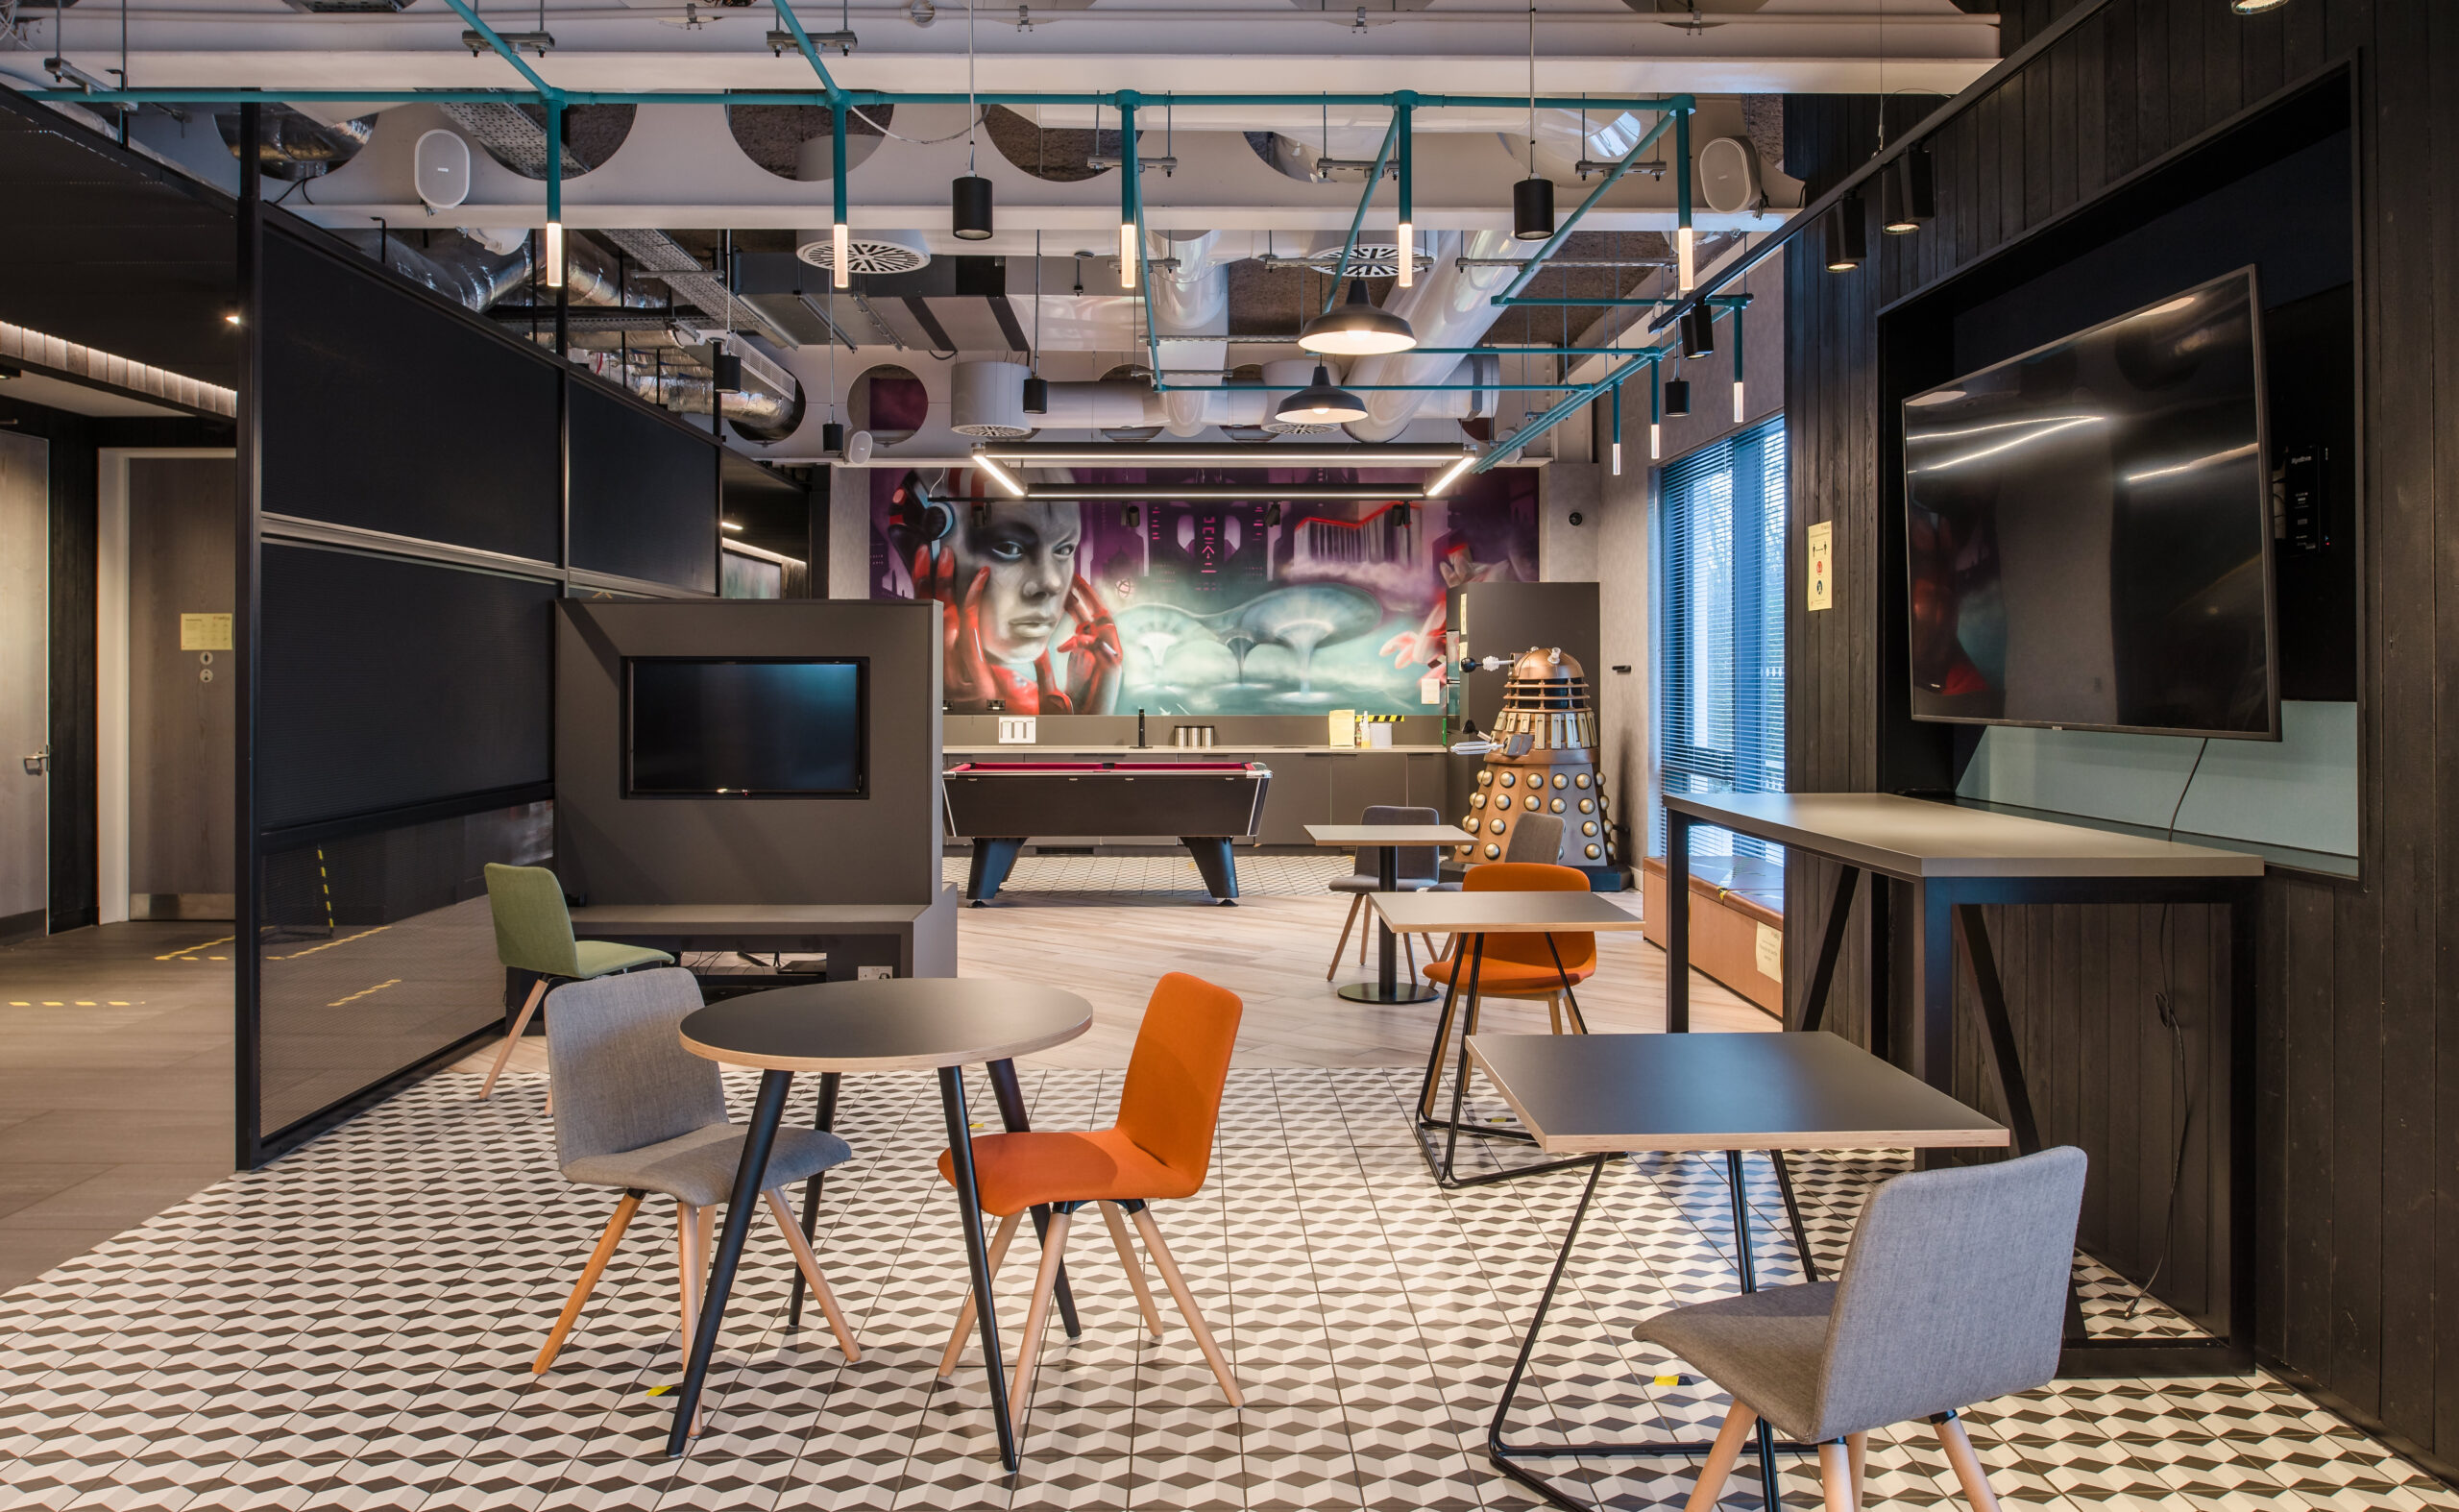 Commercial Property image after quoin's special lighting and post-production